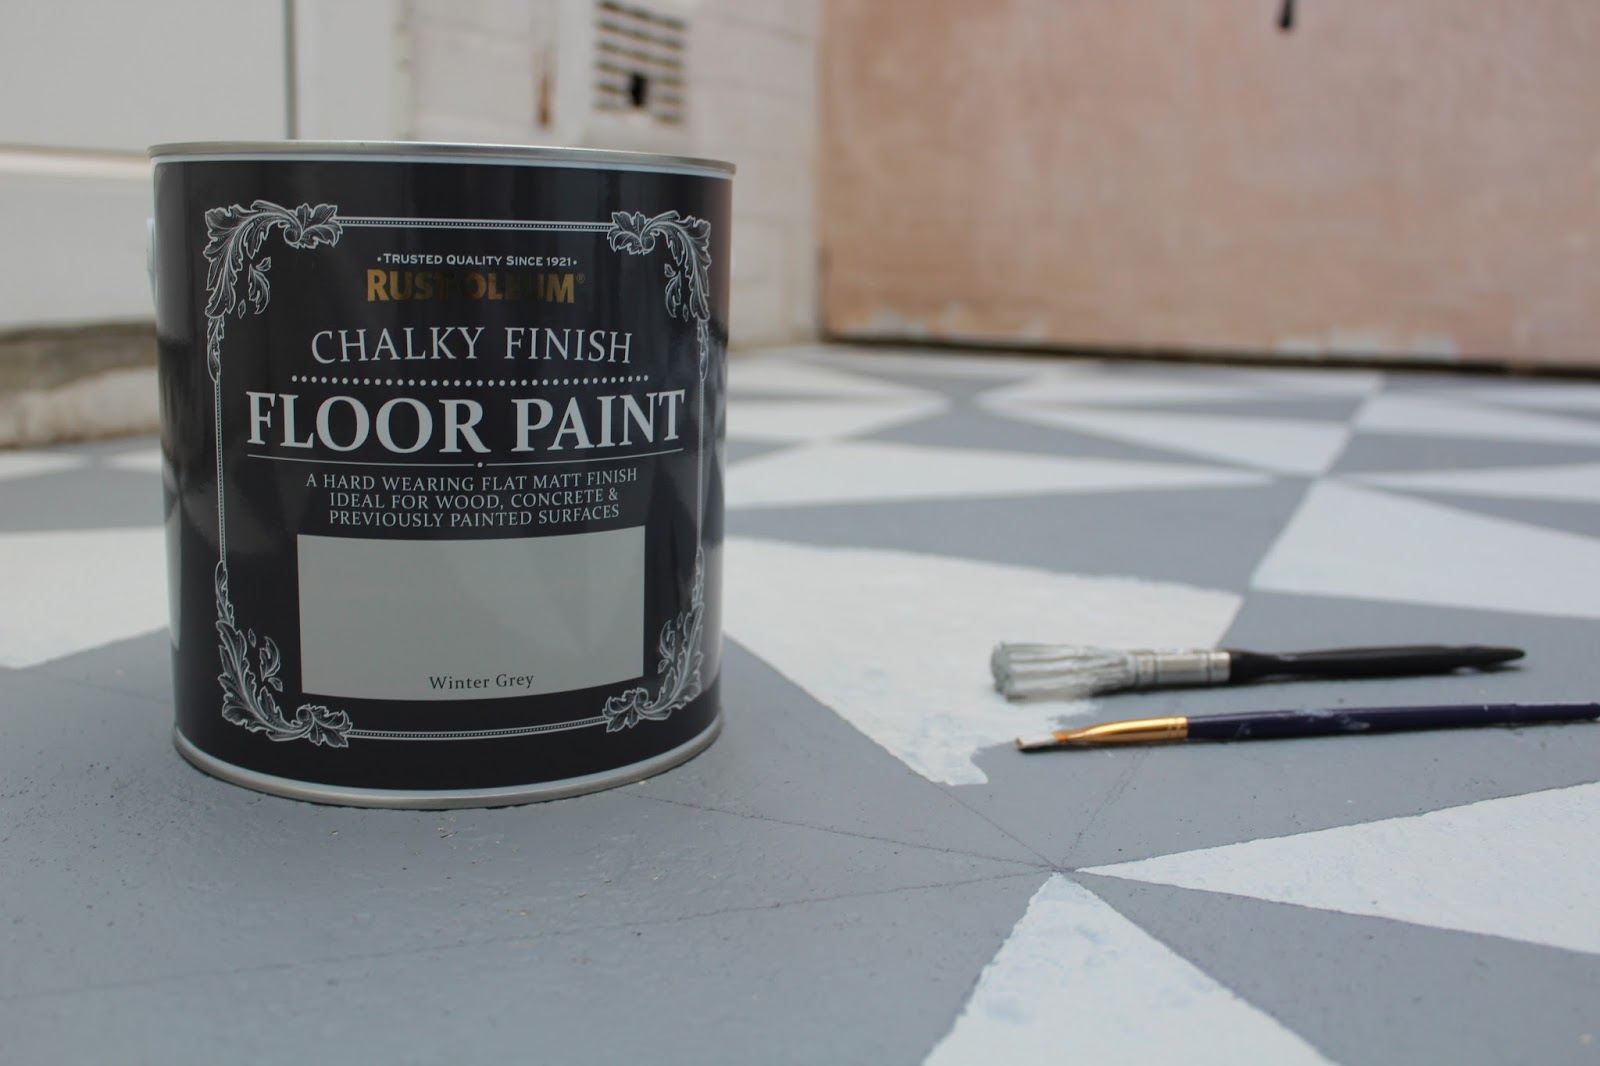 Rustoleum Chalky Finish Floor Paint Winter Grey